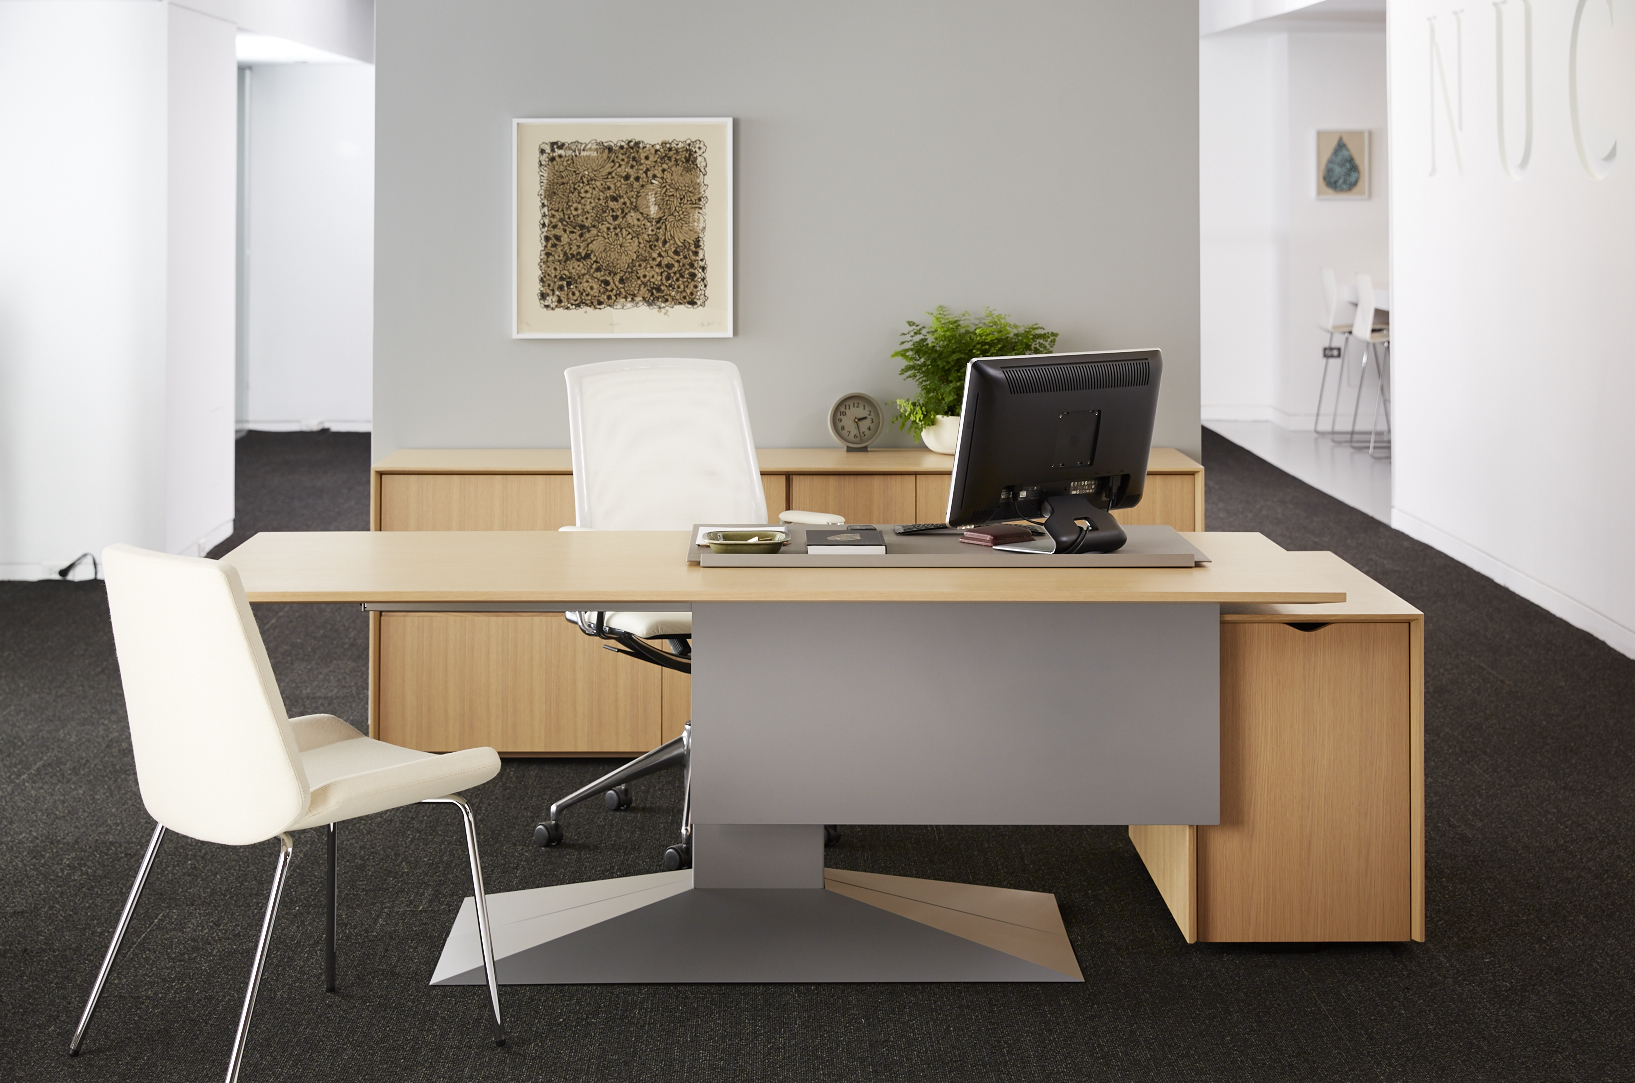 Do you prefer a wood desk? Here is what you need to know.